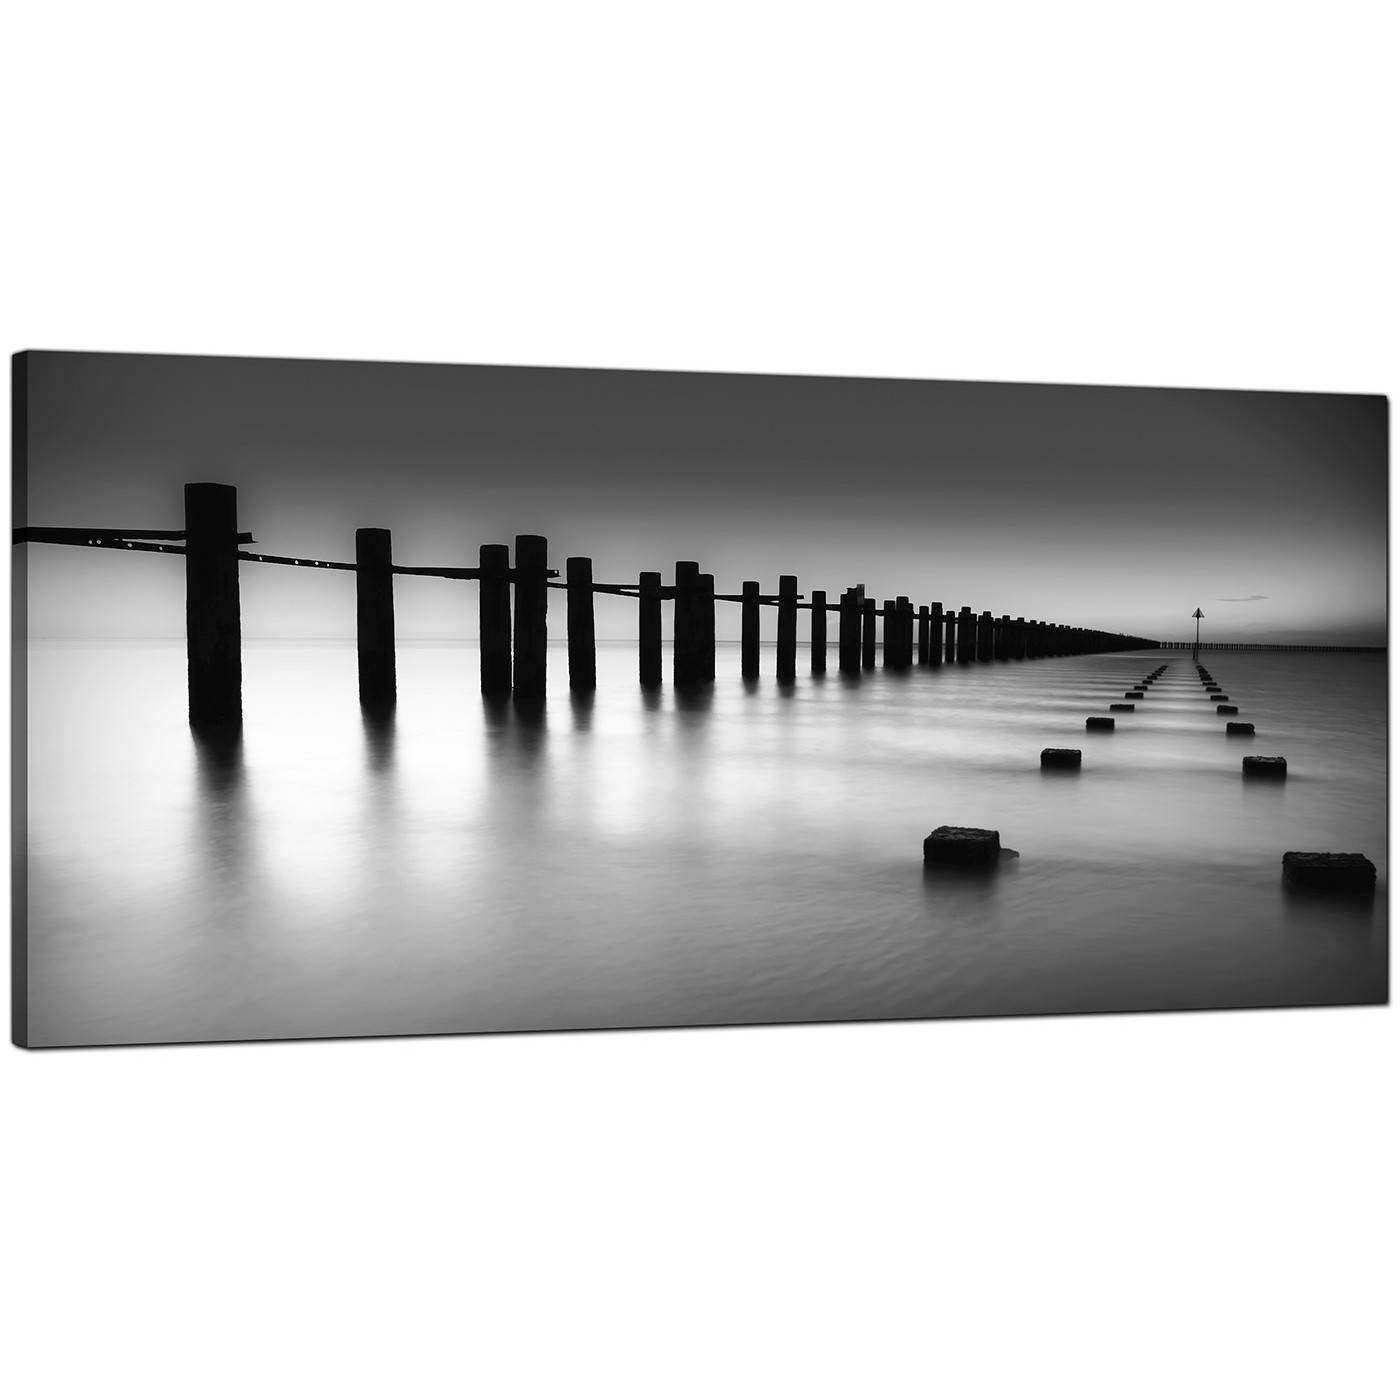 Modern Black And White Canvas Art Of The Sea Regarding Most Popular Large Black And White Wall Art (View 15 of 20)